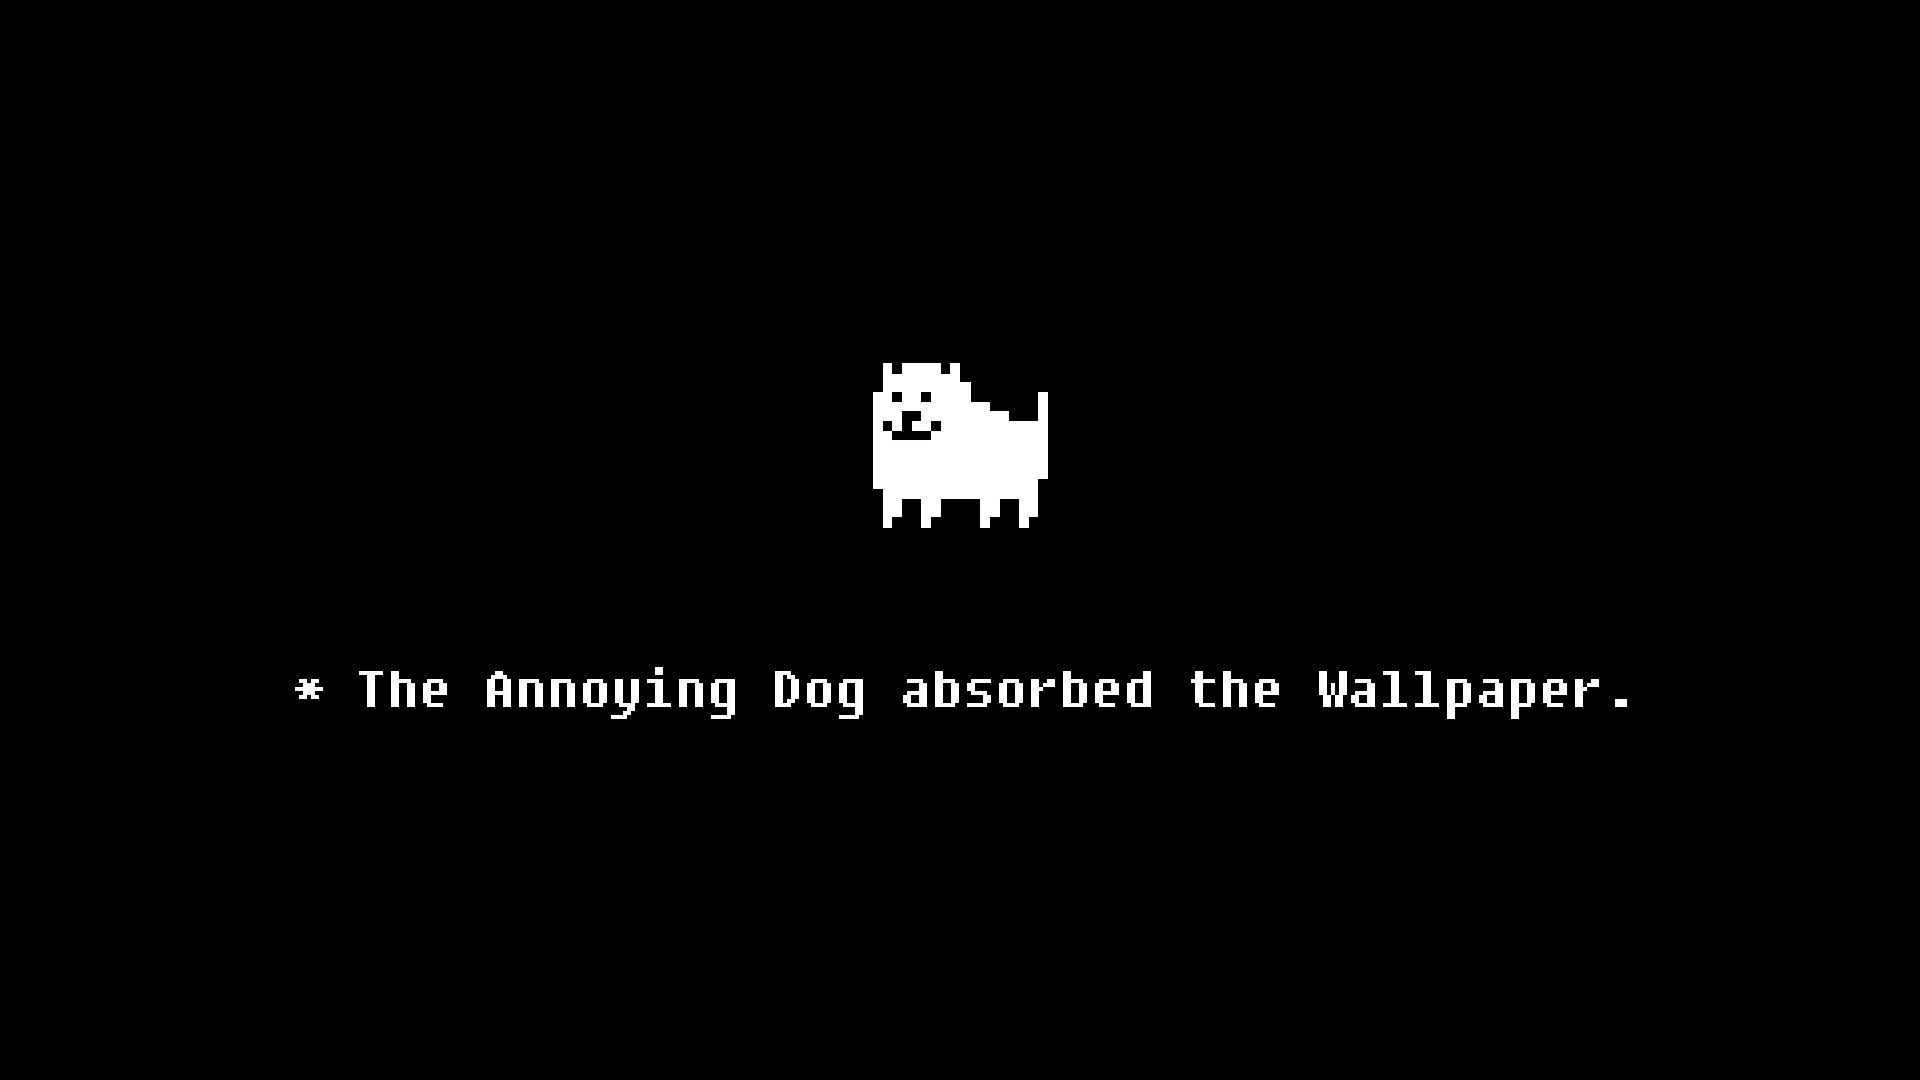 undertale imagens the annoying dog adsorbed the wallpaper hd